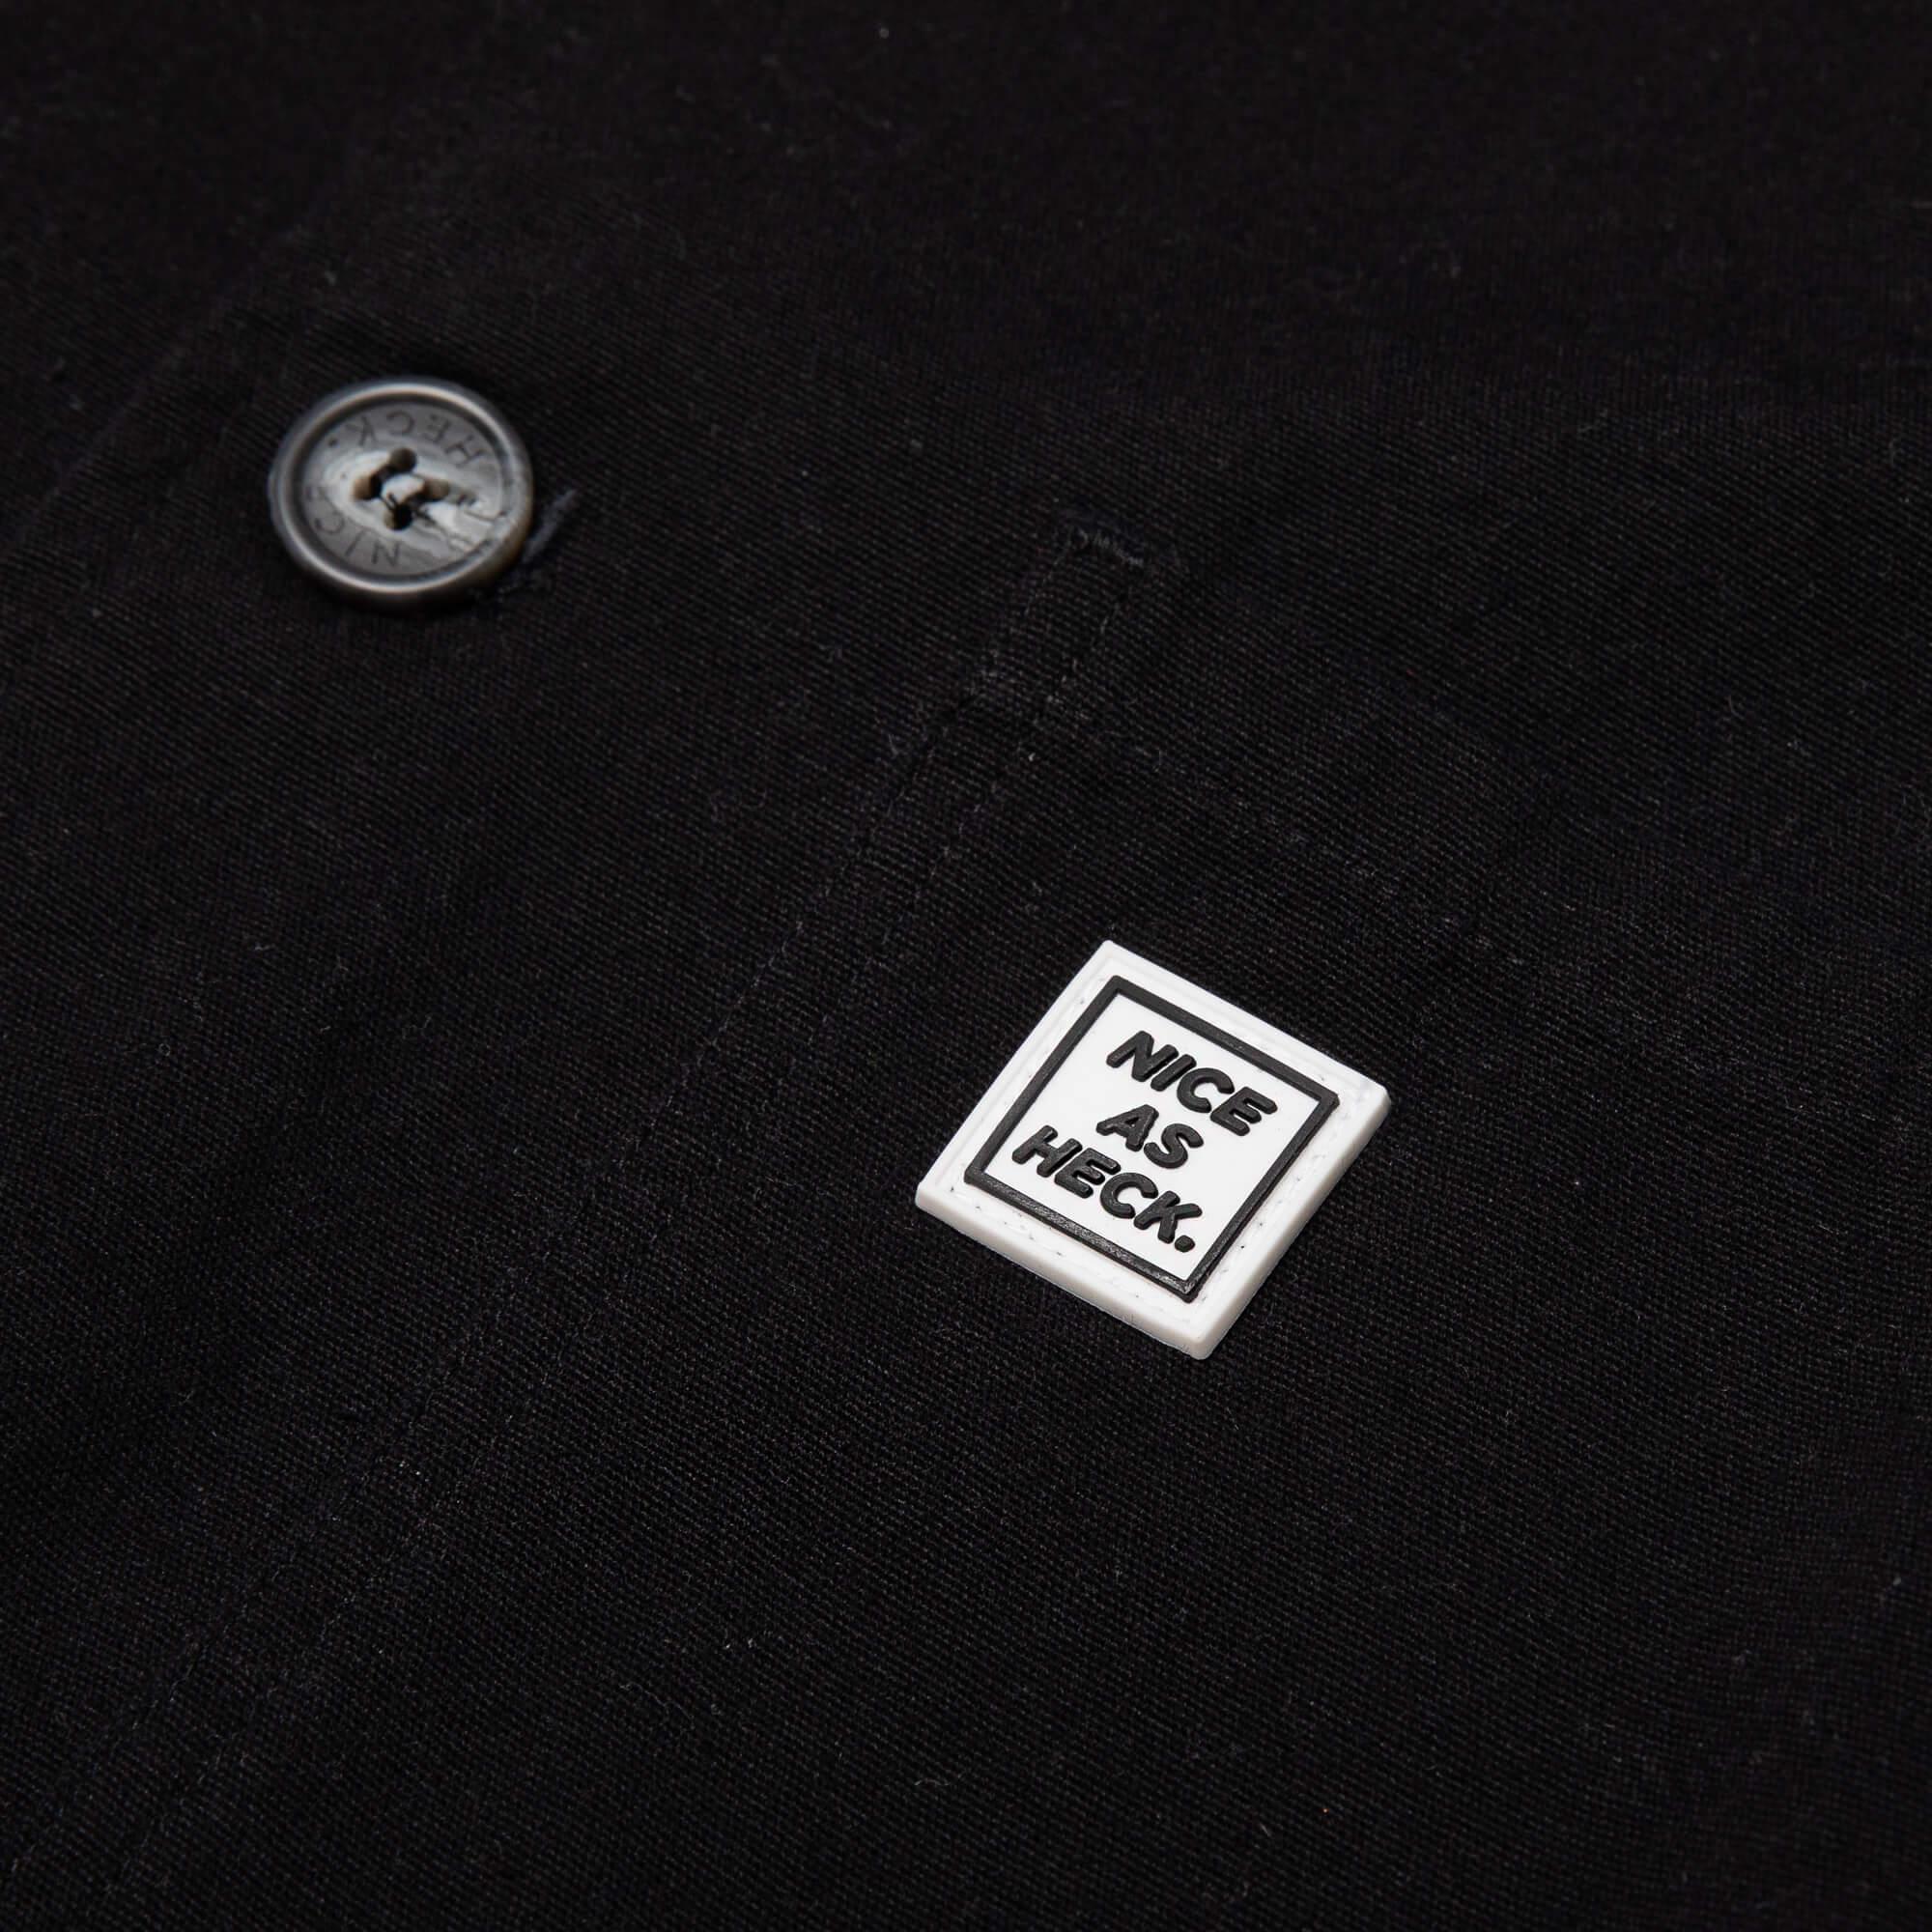 close up of the nice as heck logo on the black kickback jacket